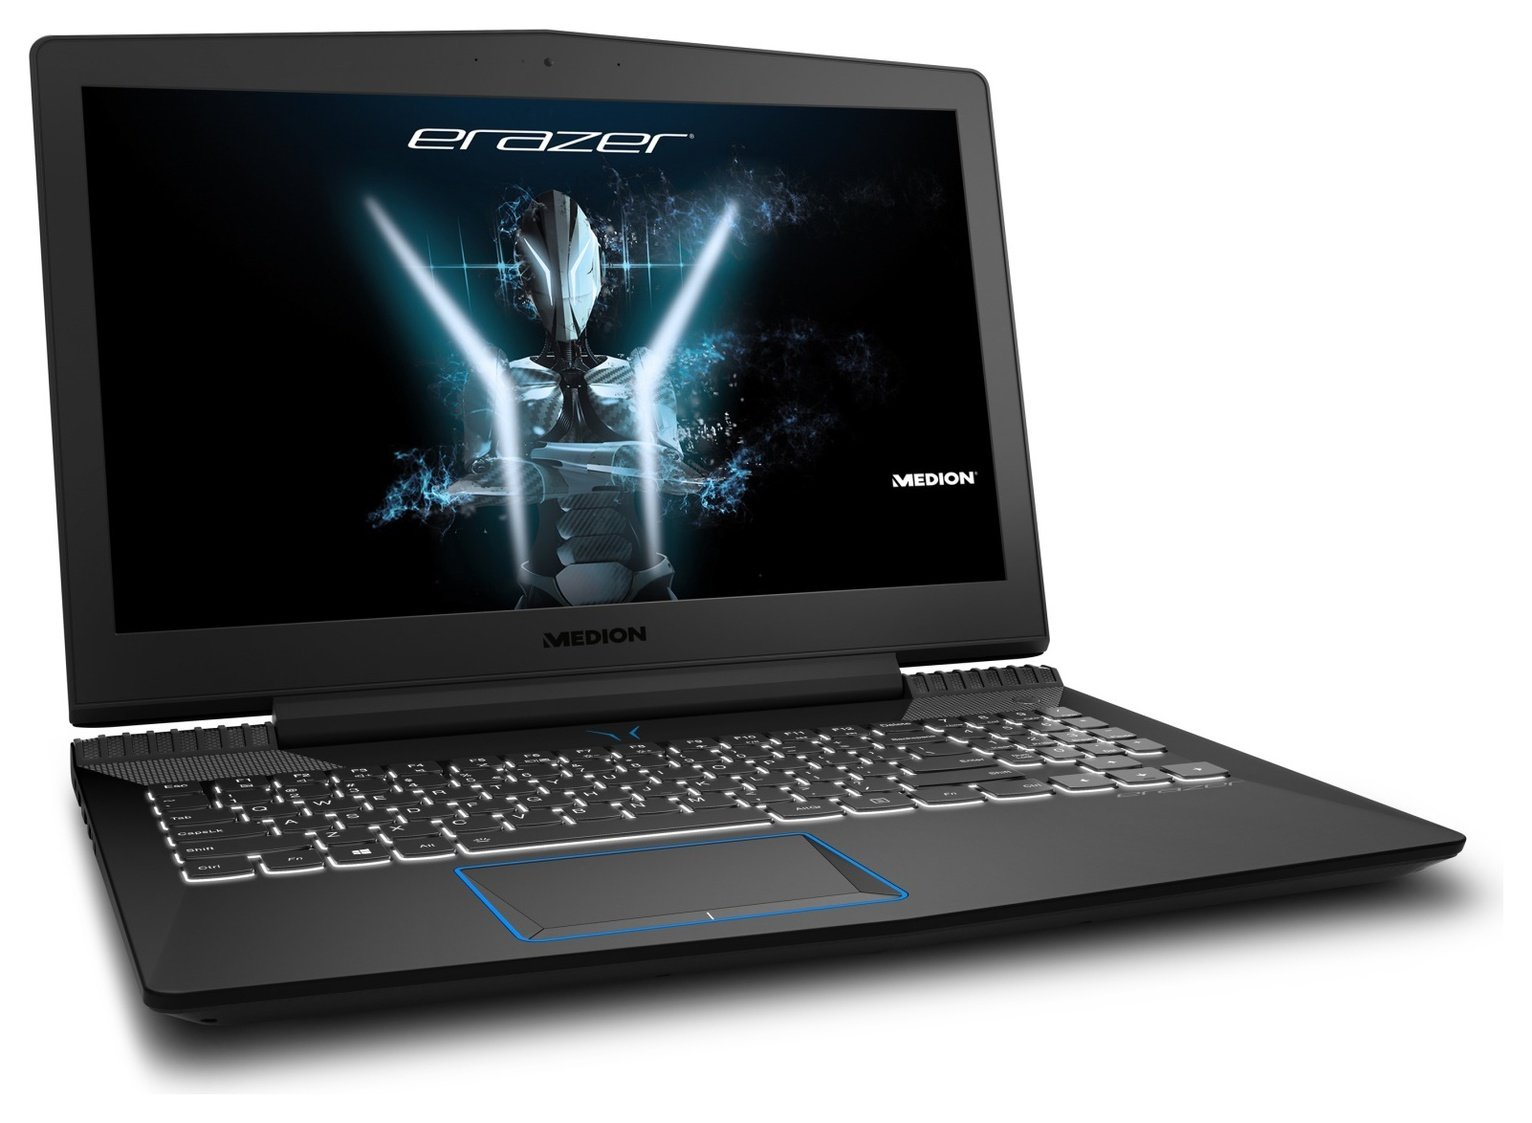 Medion Erazer X6603 i7 15 In 8GB 256GB Gaming Laptop